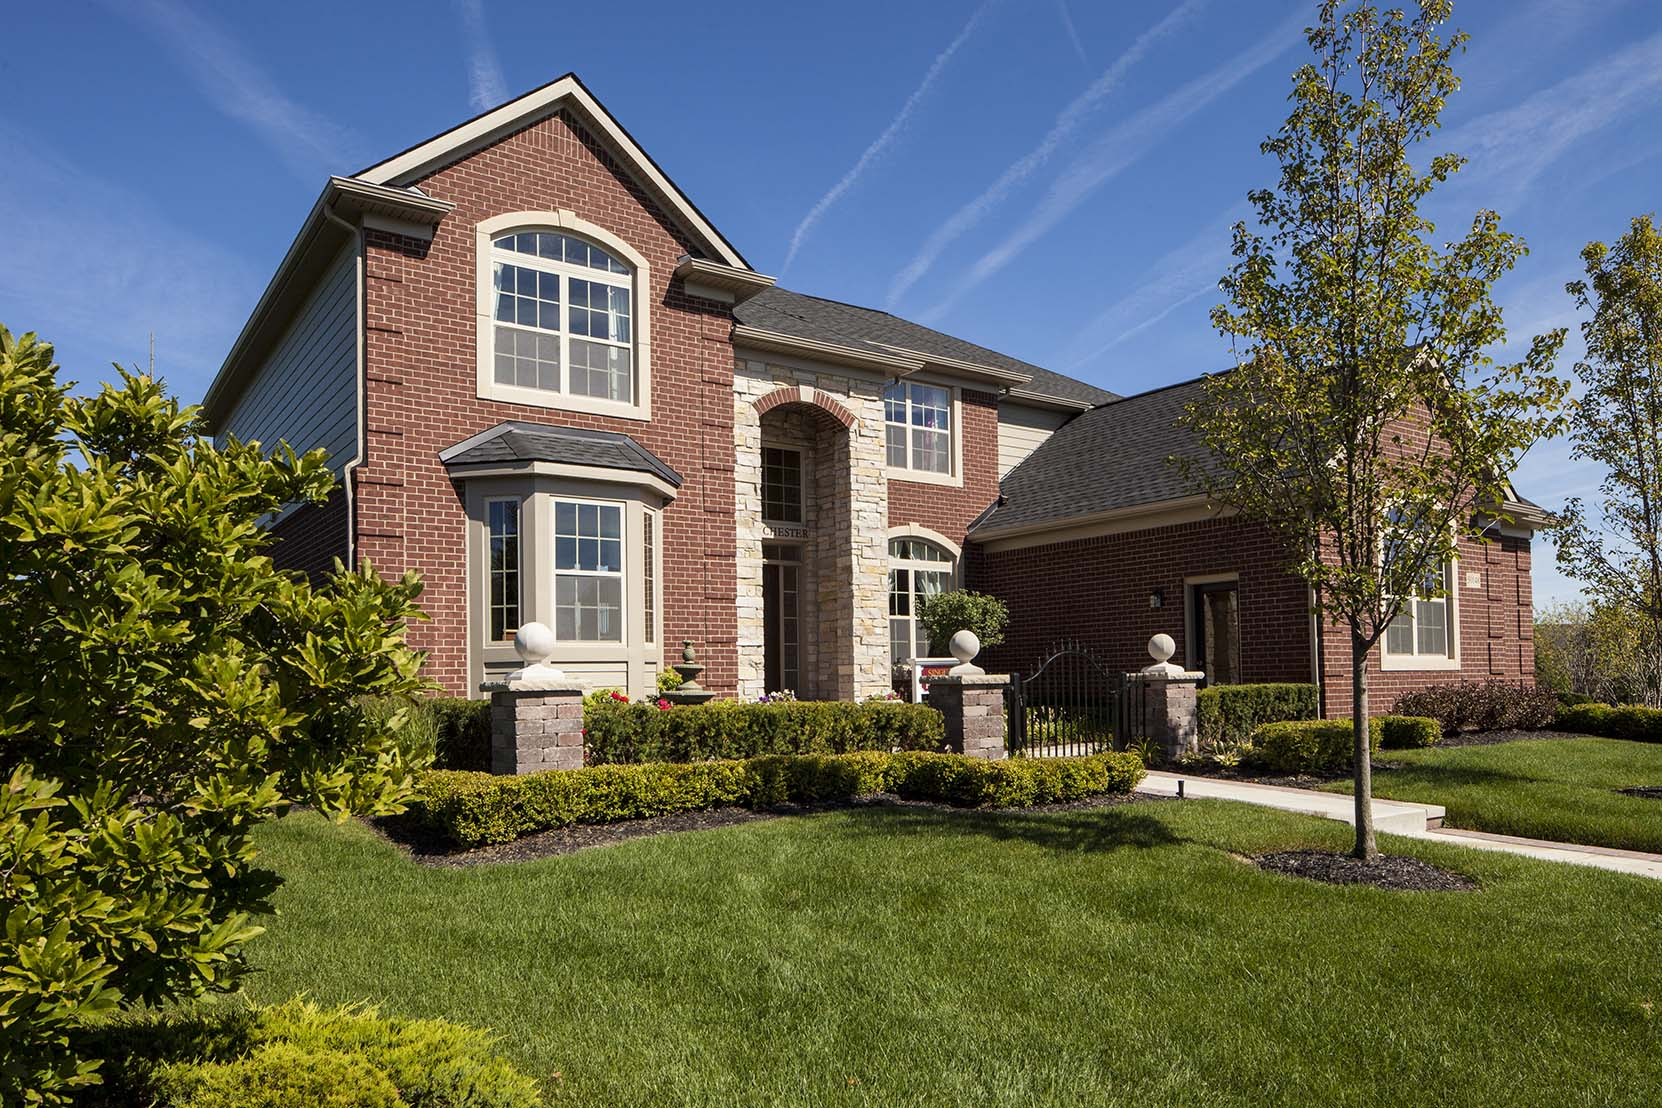 types of homes for sale in west chester ohio to suit all tastes and budgets mike wall 2018. Black Bedroom Furniture Sets. Home Design Ideas